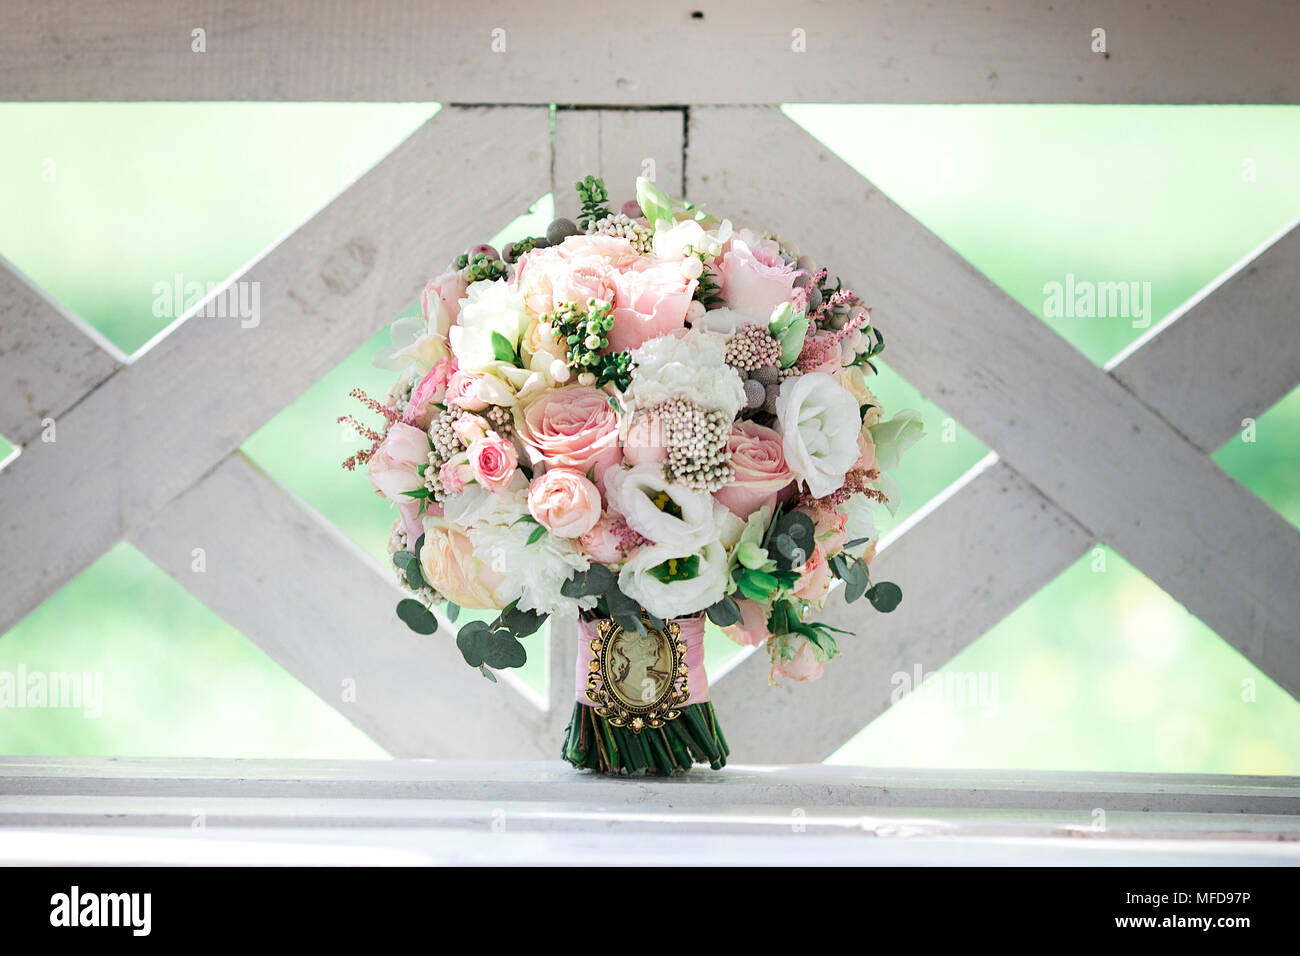 Wedding Bouquet On The Bench With White And Pink Flowers Stock Photo